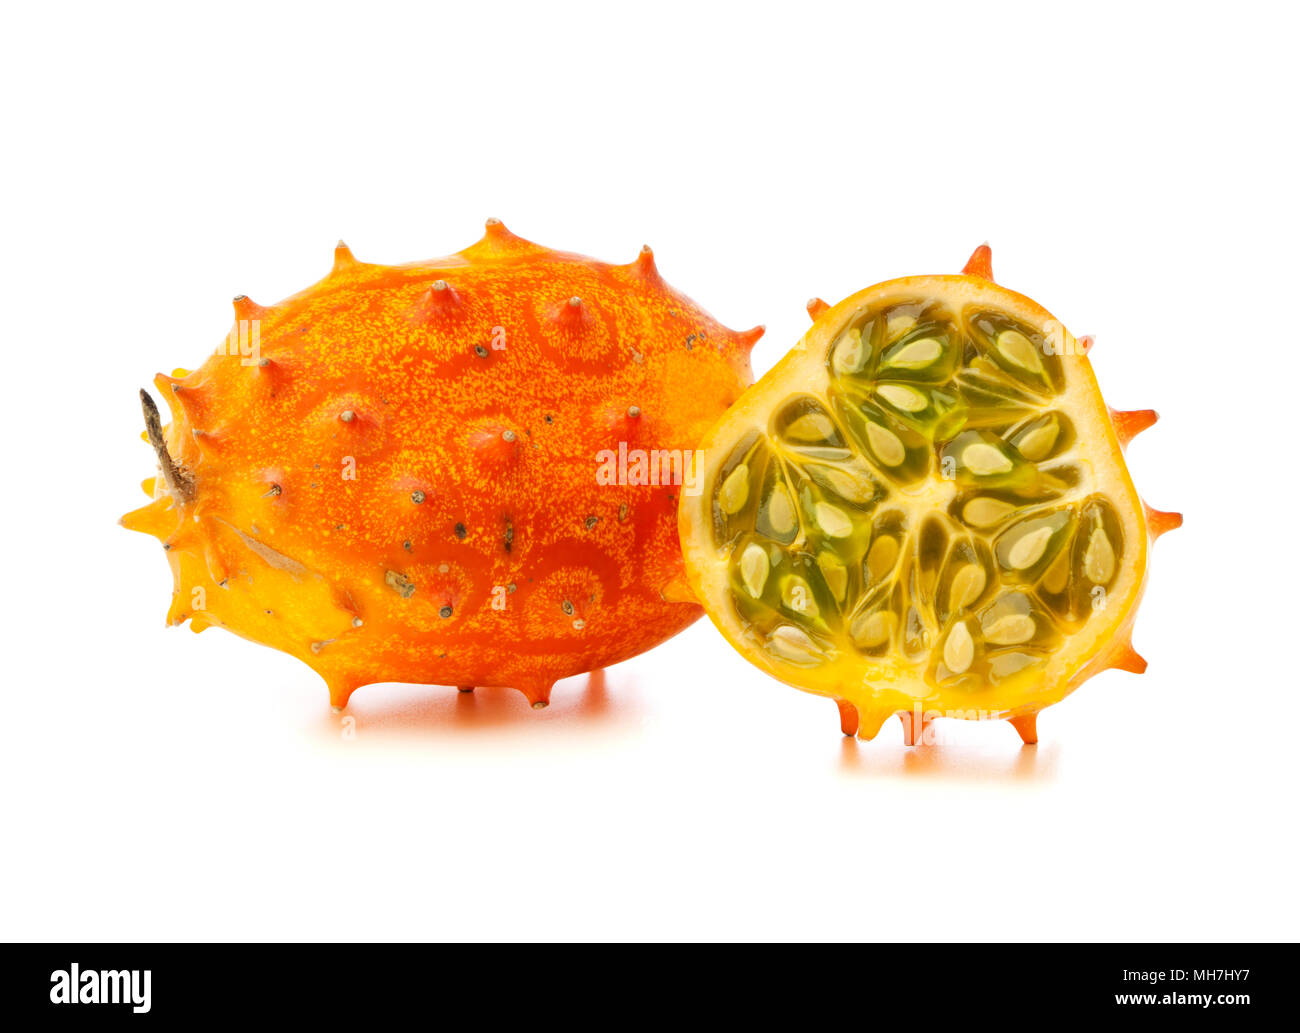 whole and half African Horned Melon on white background - Stock Image